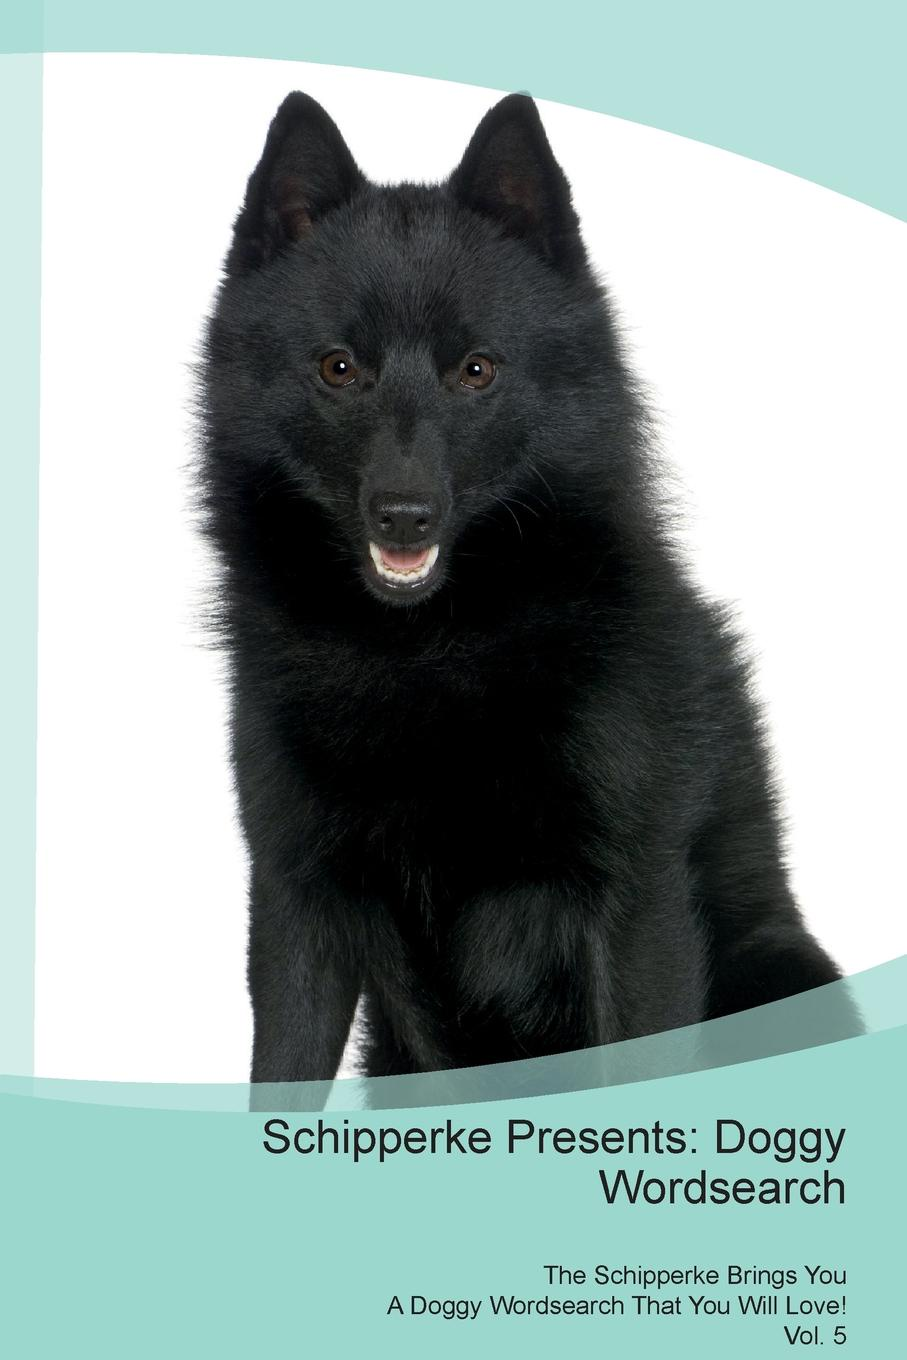 Doggy Puzzles Schipperke Presents. Wordsearch The Brings You A That Will Love! Vol. 5